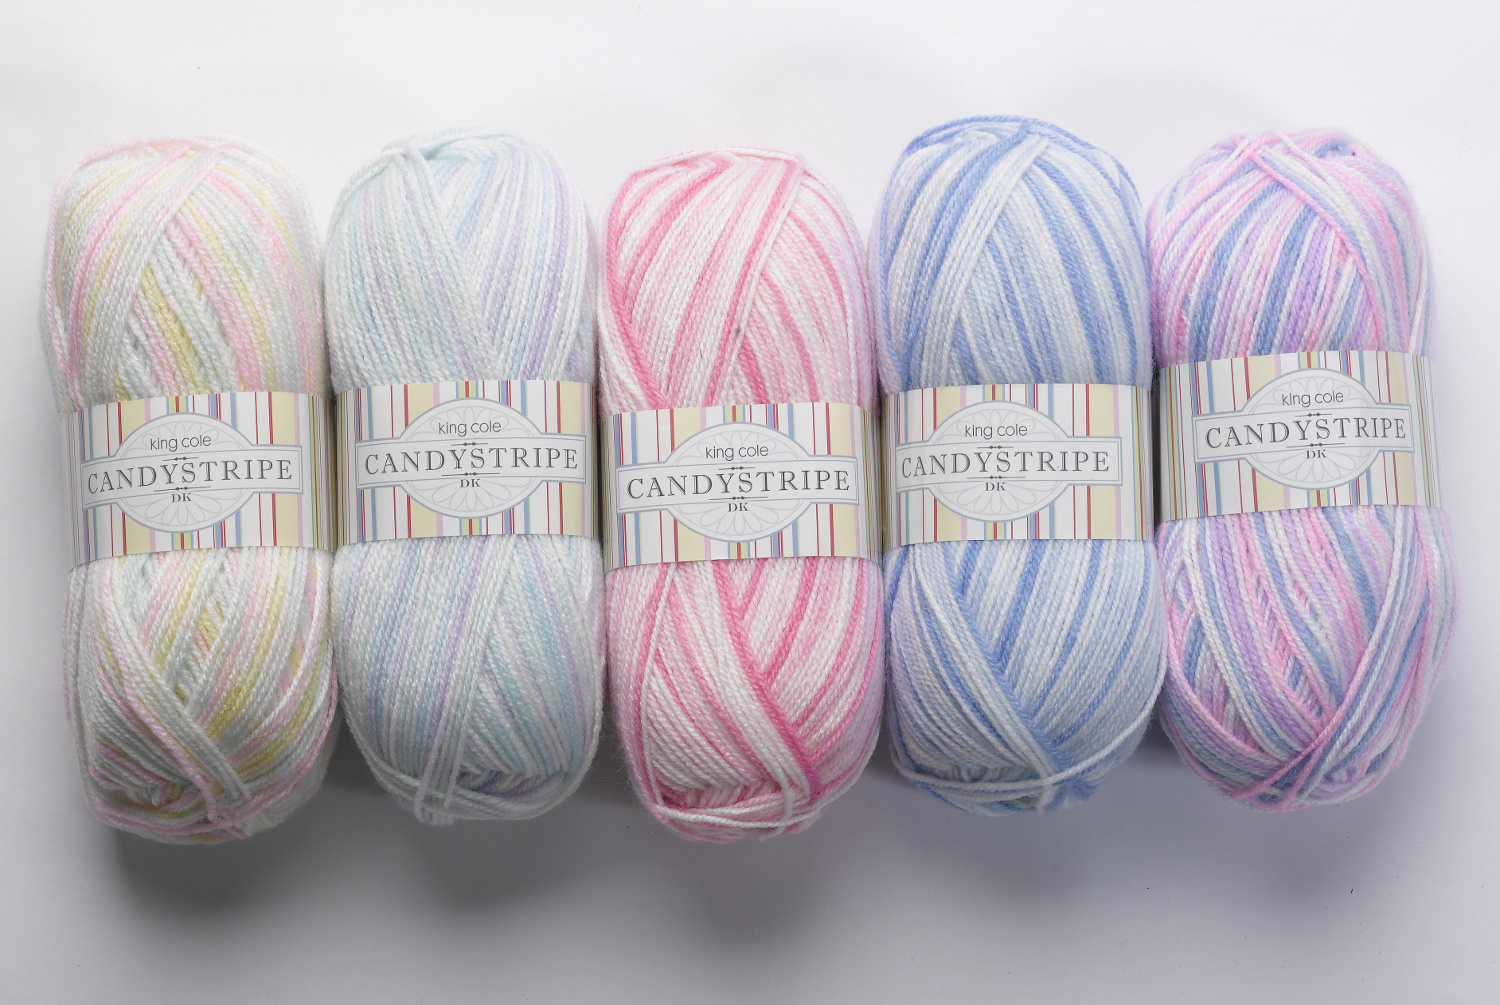 ... Acrylic Double Knitting DK Wool 100g Ball Candy Stripe King Cole Yarn